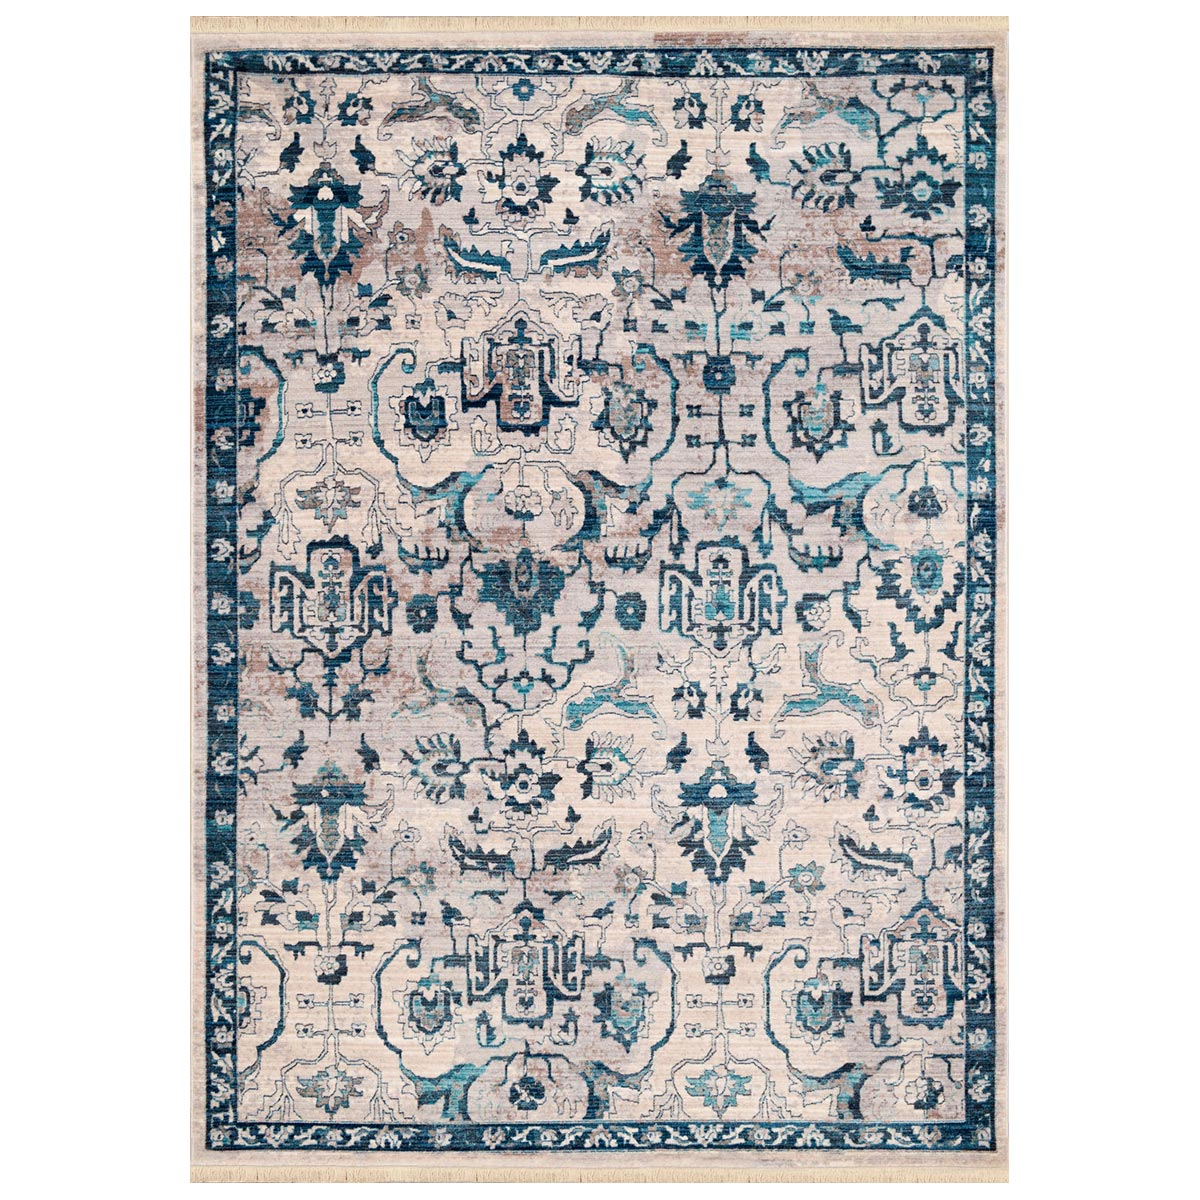 Tribal Day Rug - 13 x 15